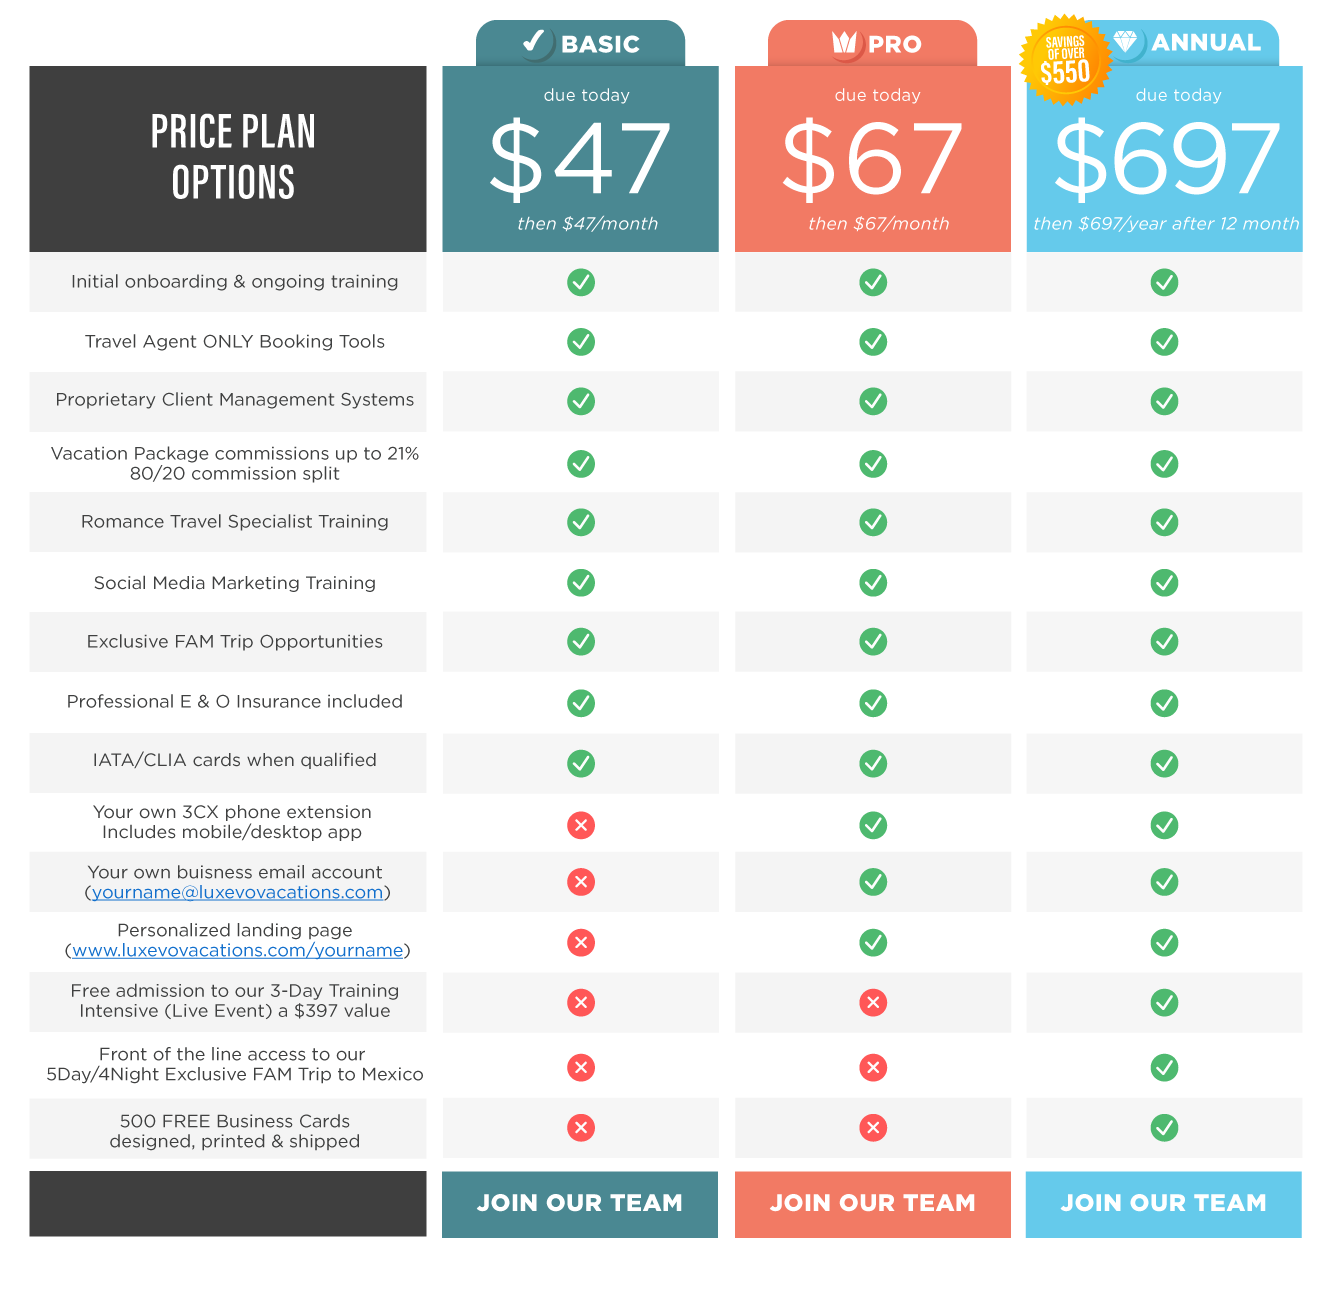 Pricing Plan Options! Save over $550 when you choose our Annual Payment Plan!